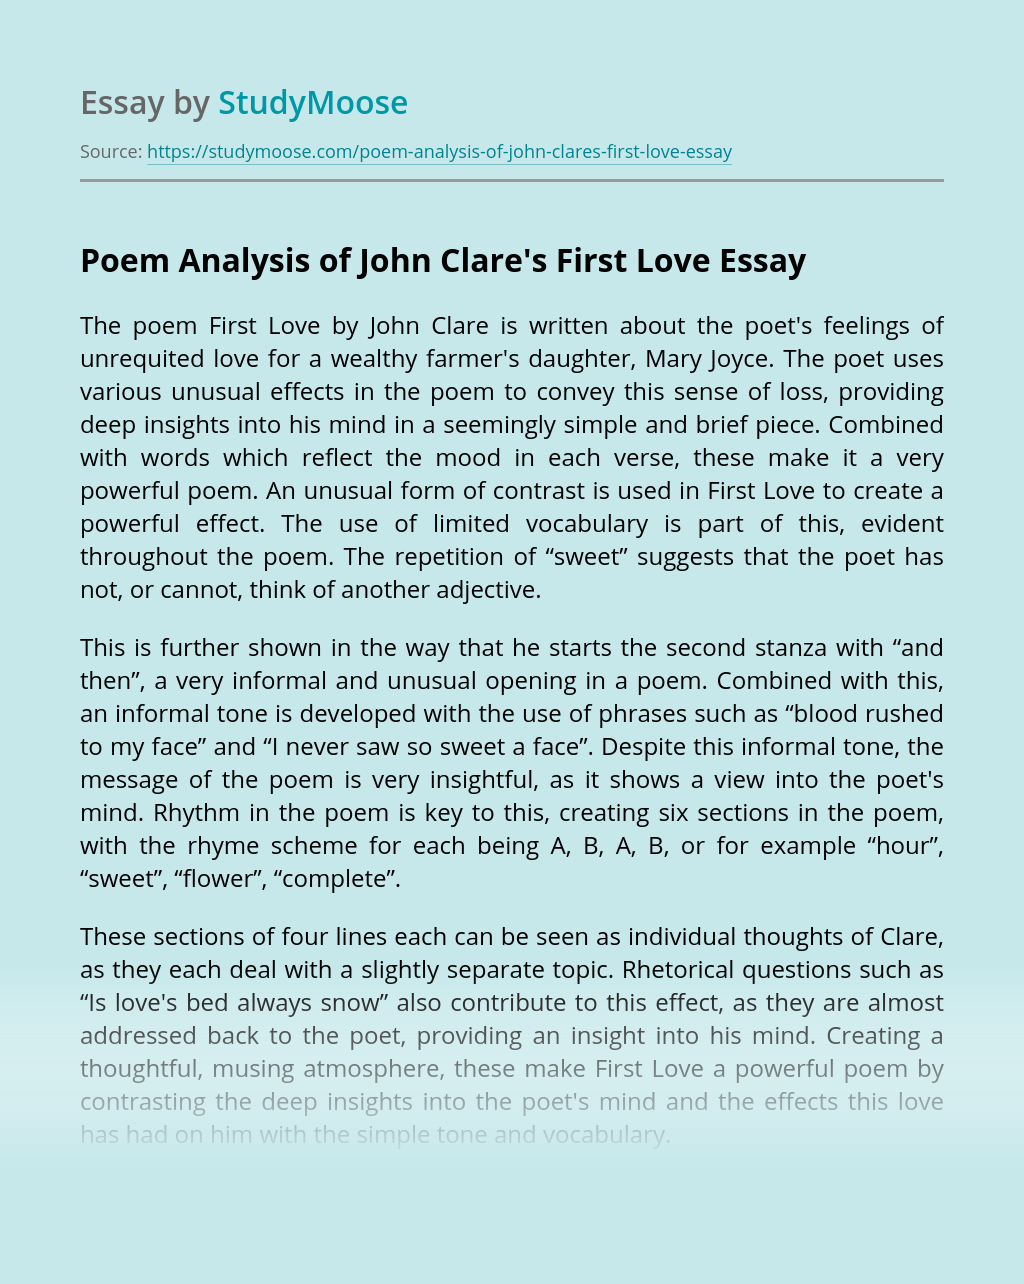 Poem Analysis of John Clare's First Love